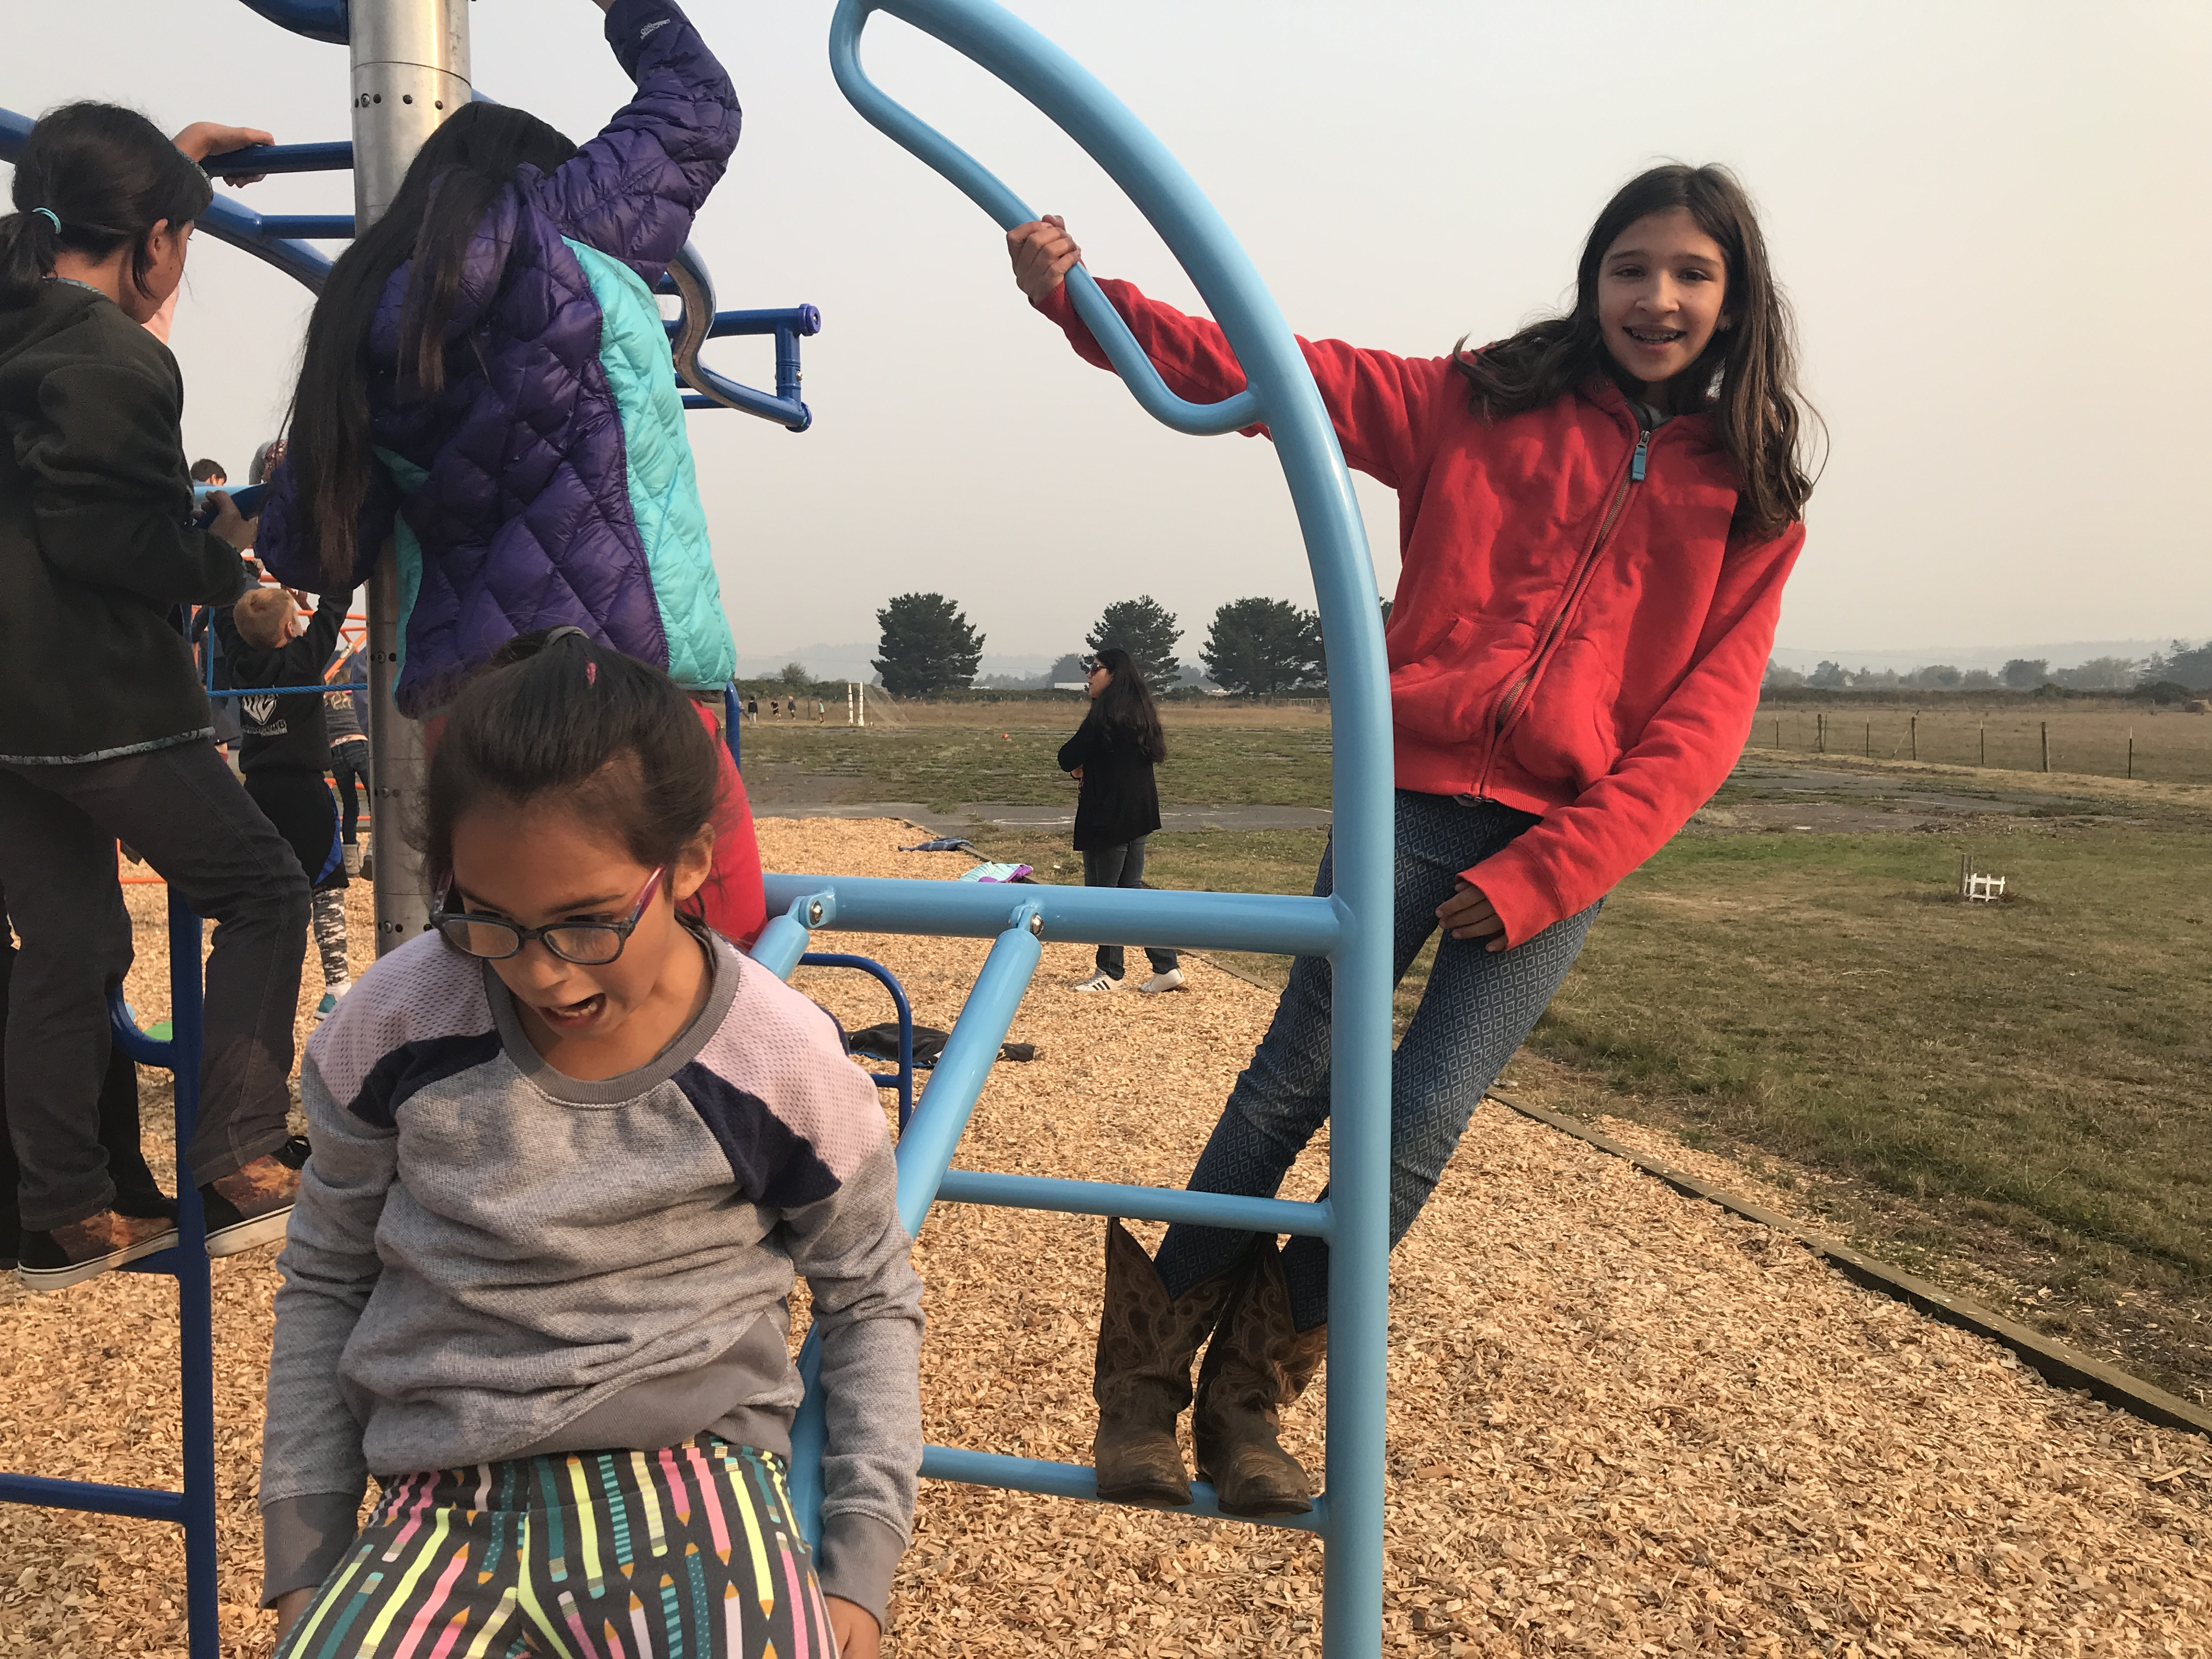 Students playing on the playground